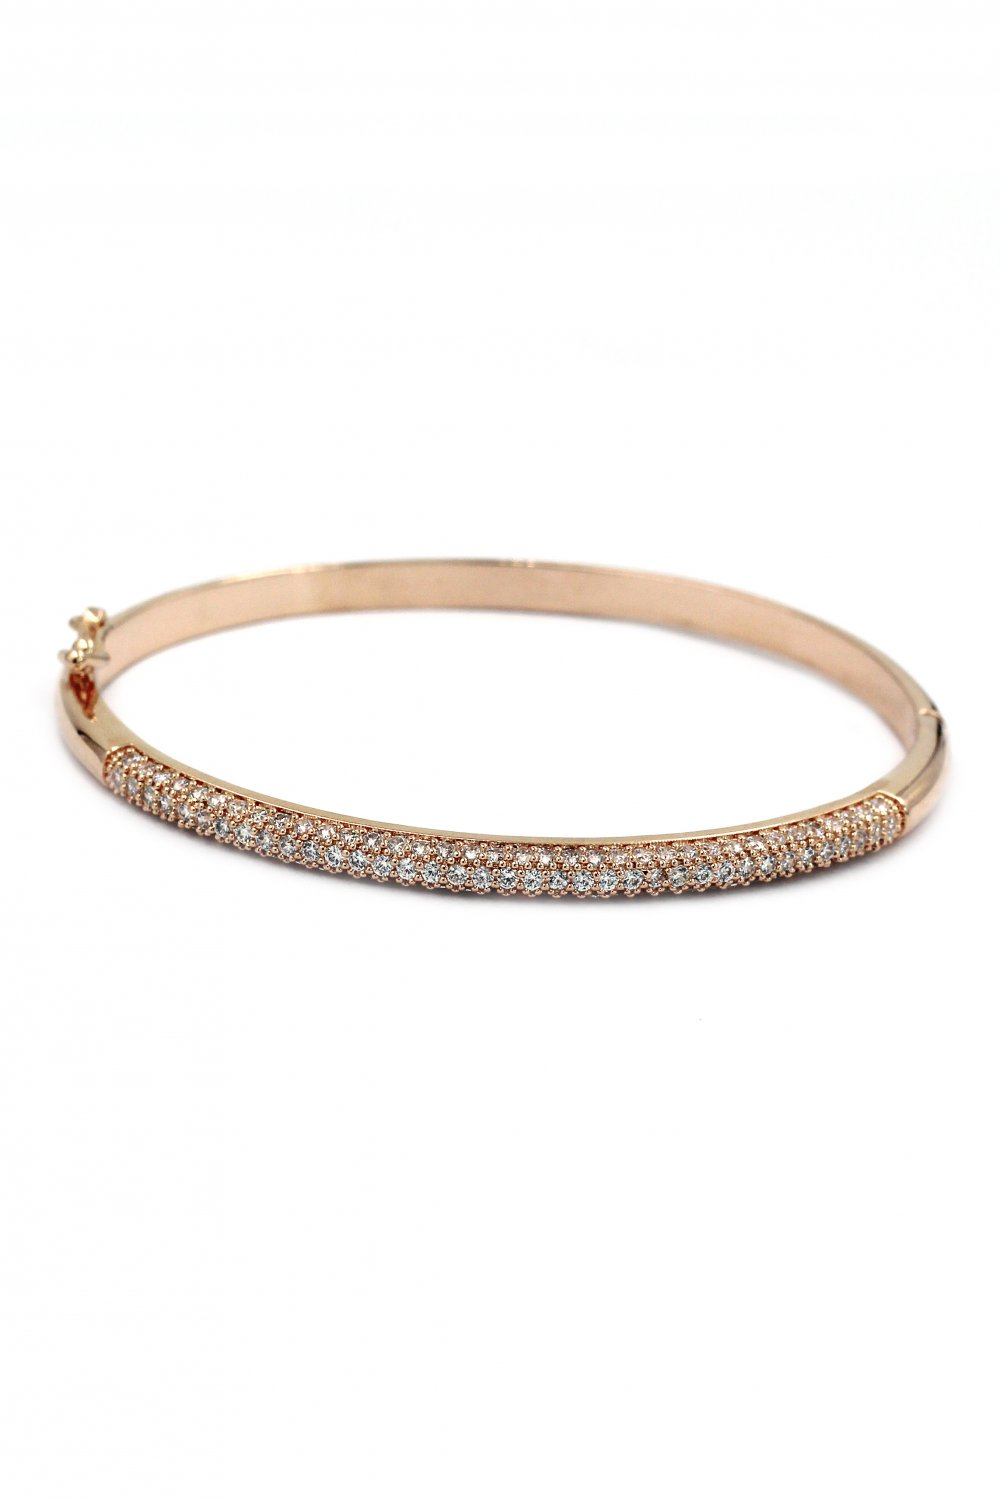 Fashion micro-small crystal rose gold bracelet